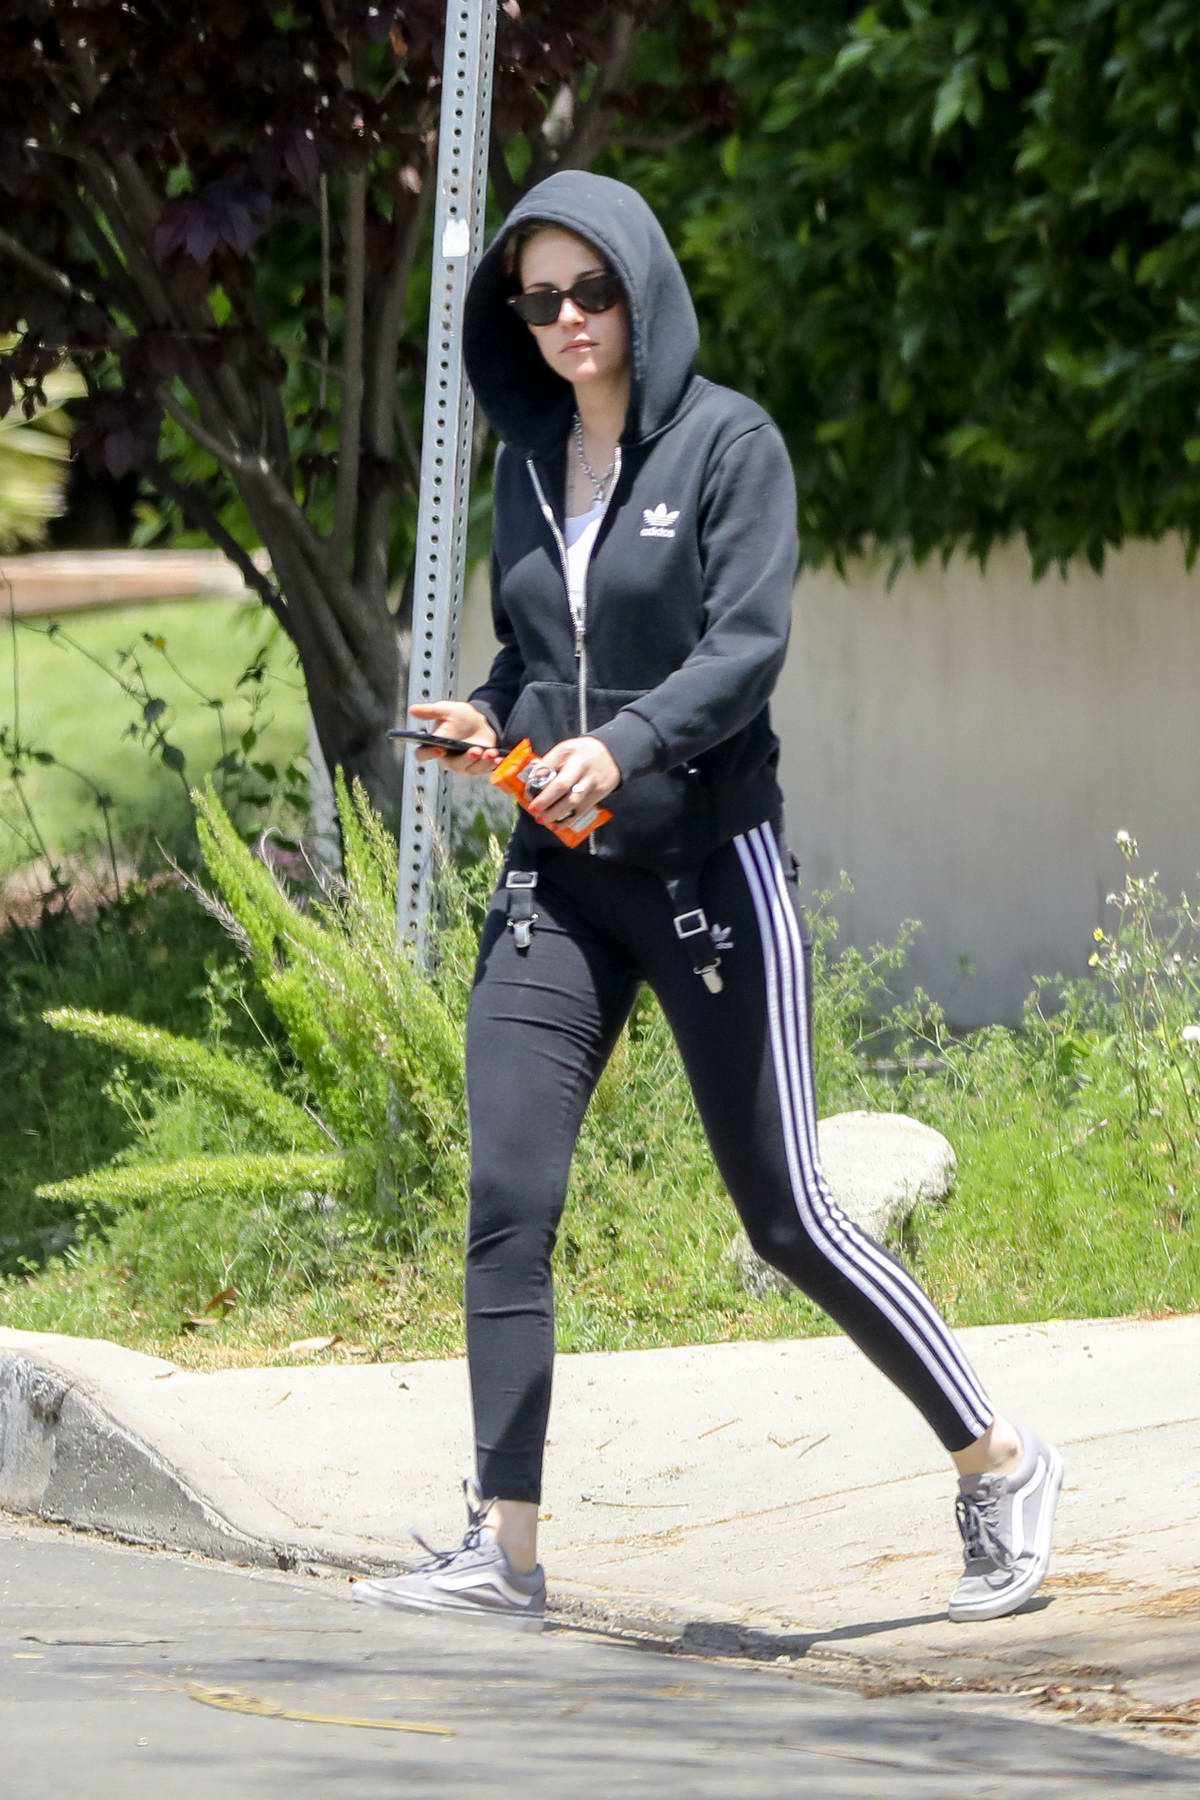 Kristen Stewart dons an all Adidas workout gear as she hits the gym in Los Feliz, California